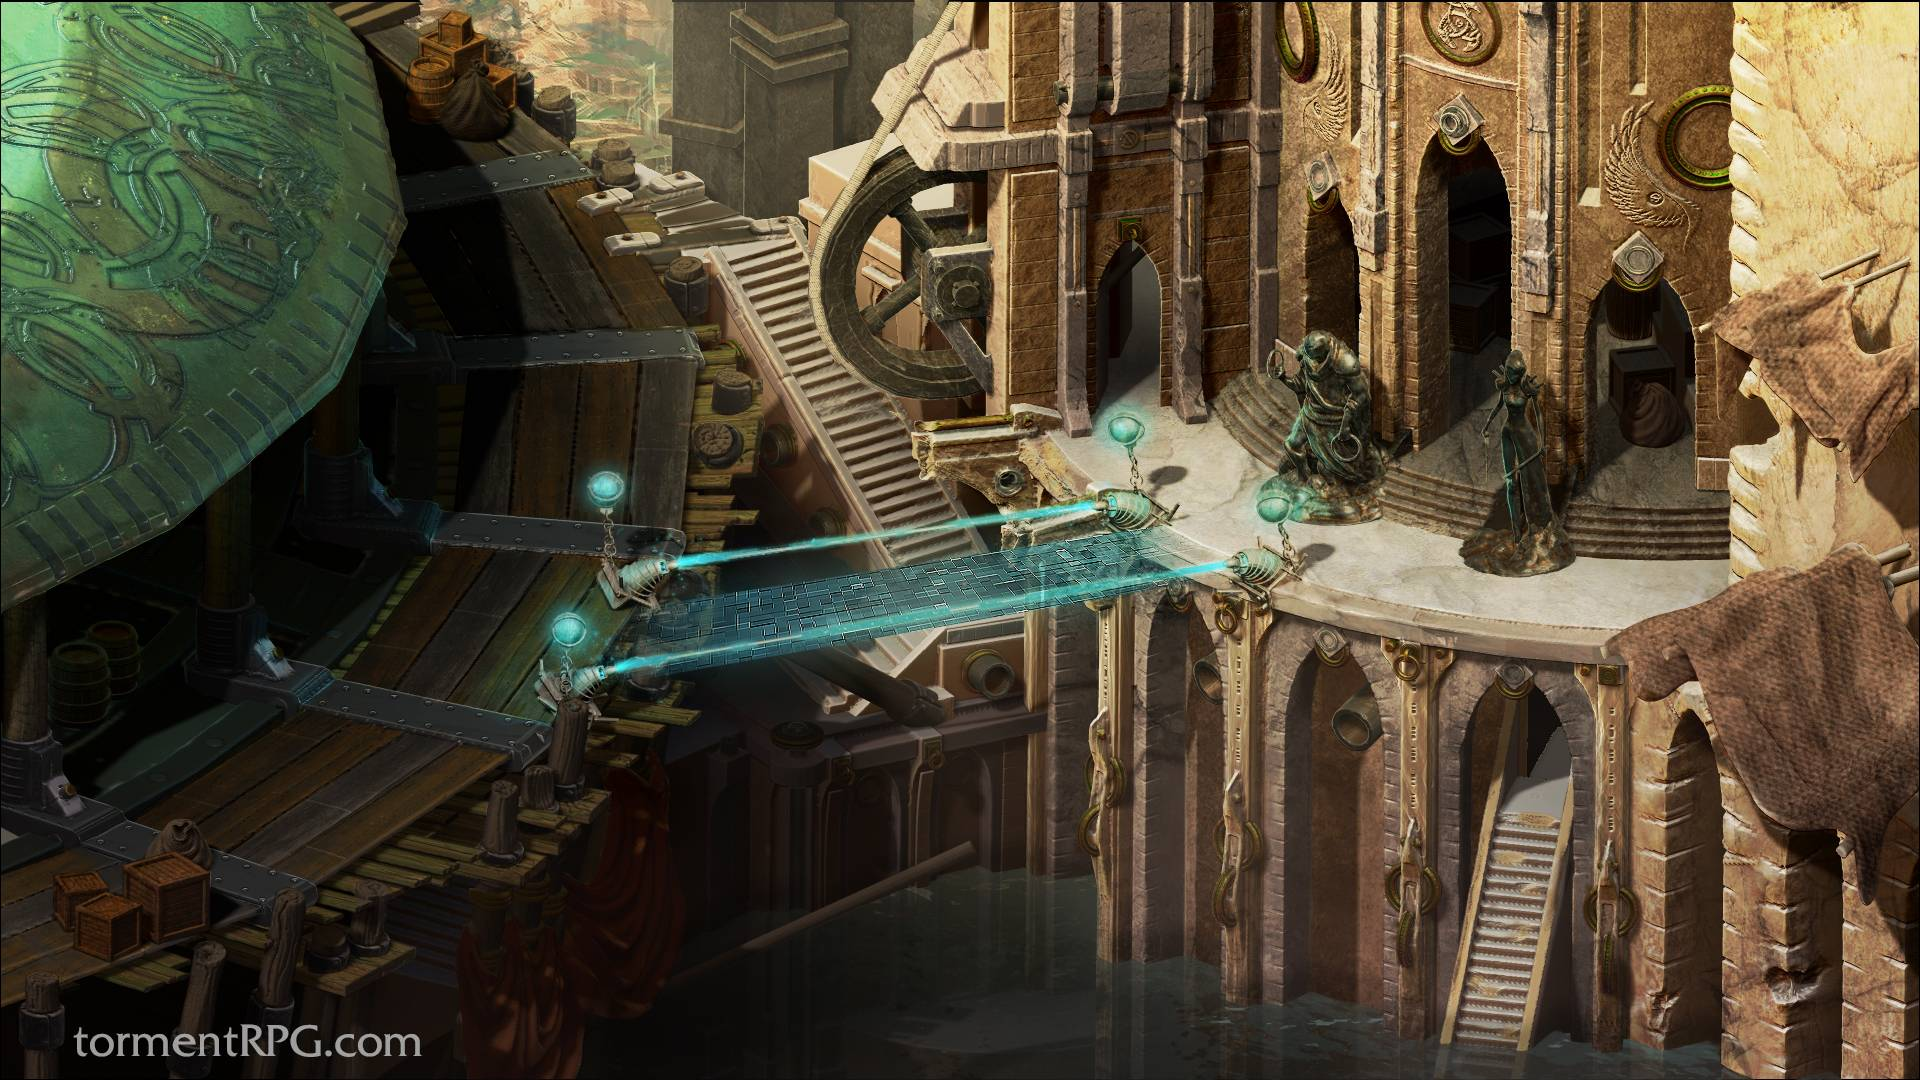 Torment: Tides of Numenera New Legacy and Meaning Trailer Released